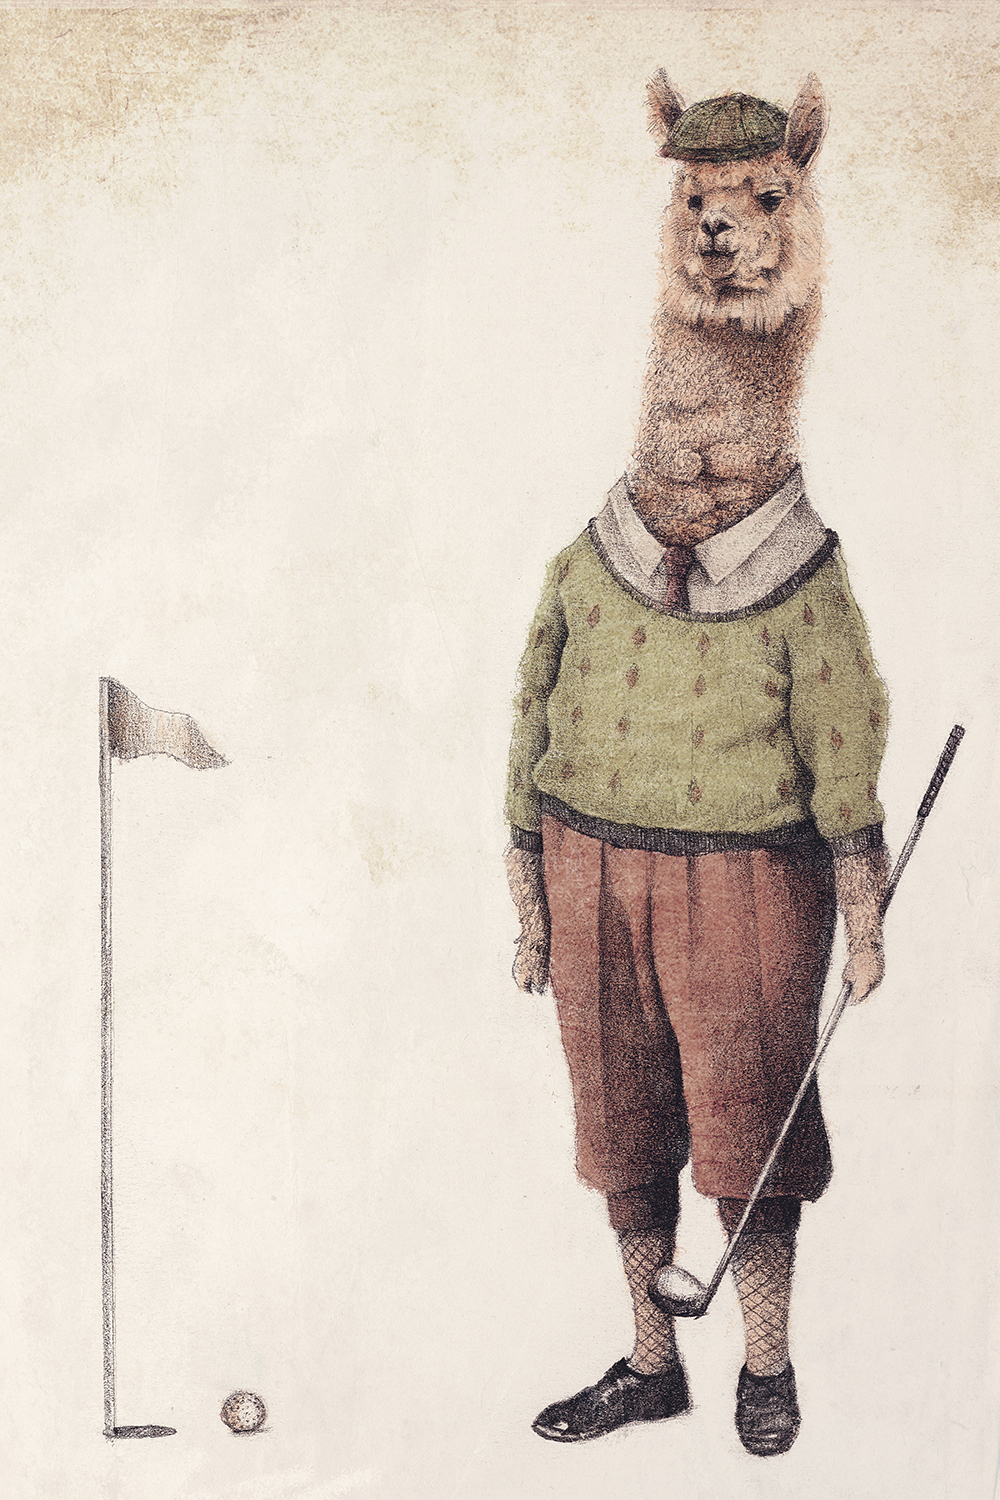 Illustration of an alpaca wearing a golf uniform holding a club next to a tee and golf ball